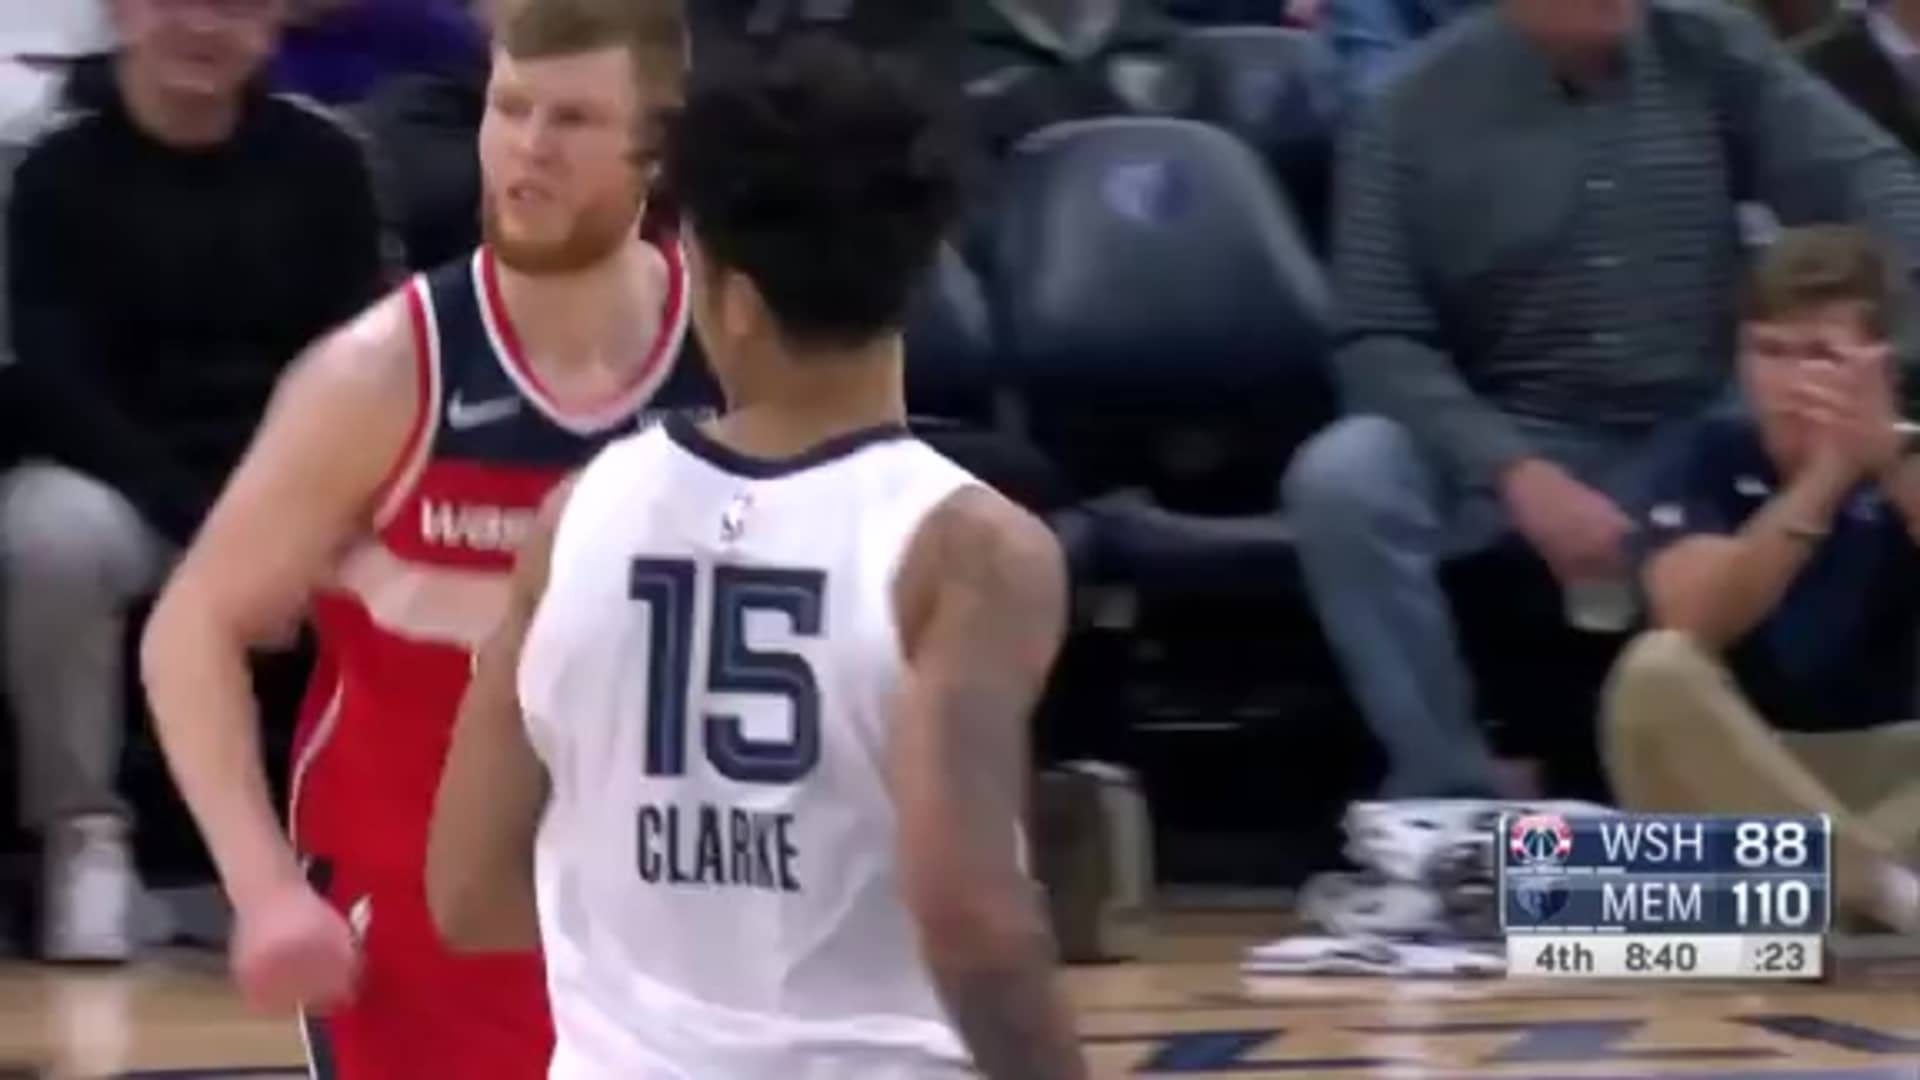 Highlights: Wizards vs. Grizzlies - 12/14/19